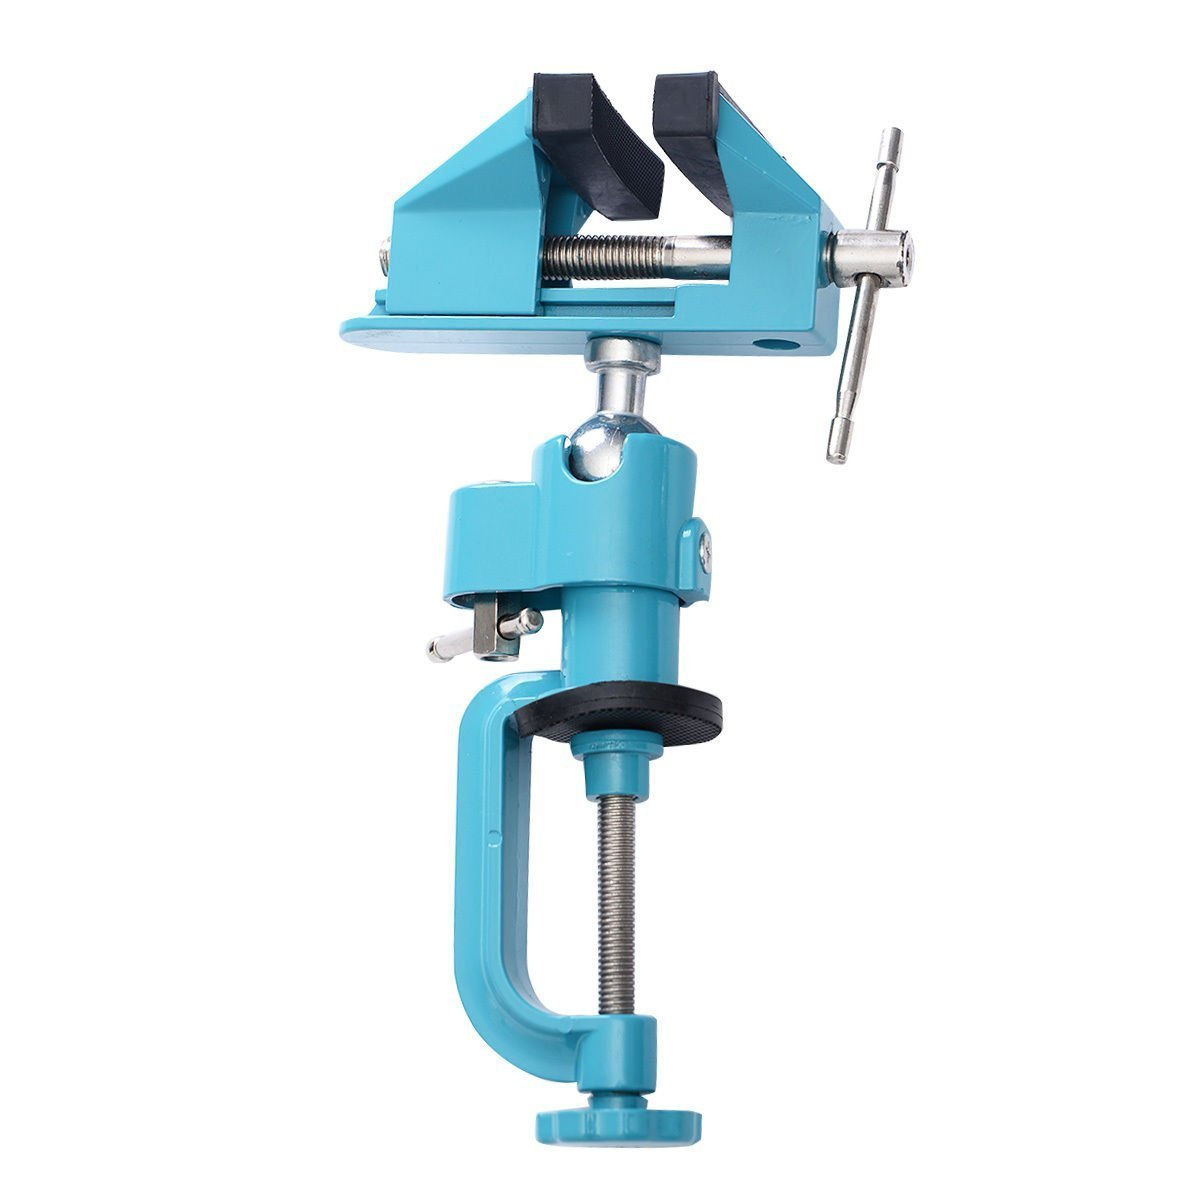 Goplus Bench Vise Swivel 3'' Tabletop Clamp Vice Tilts Rotate 360° Universal Work by Goplus (Image #2)